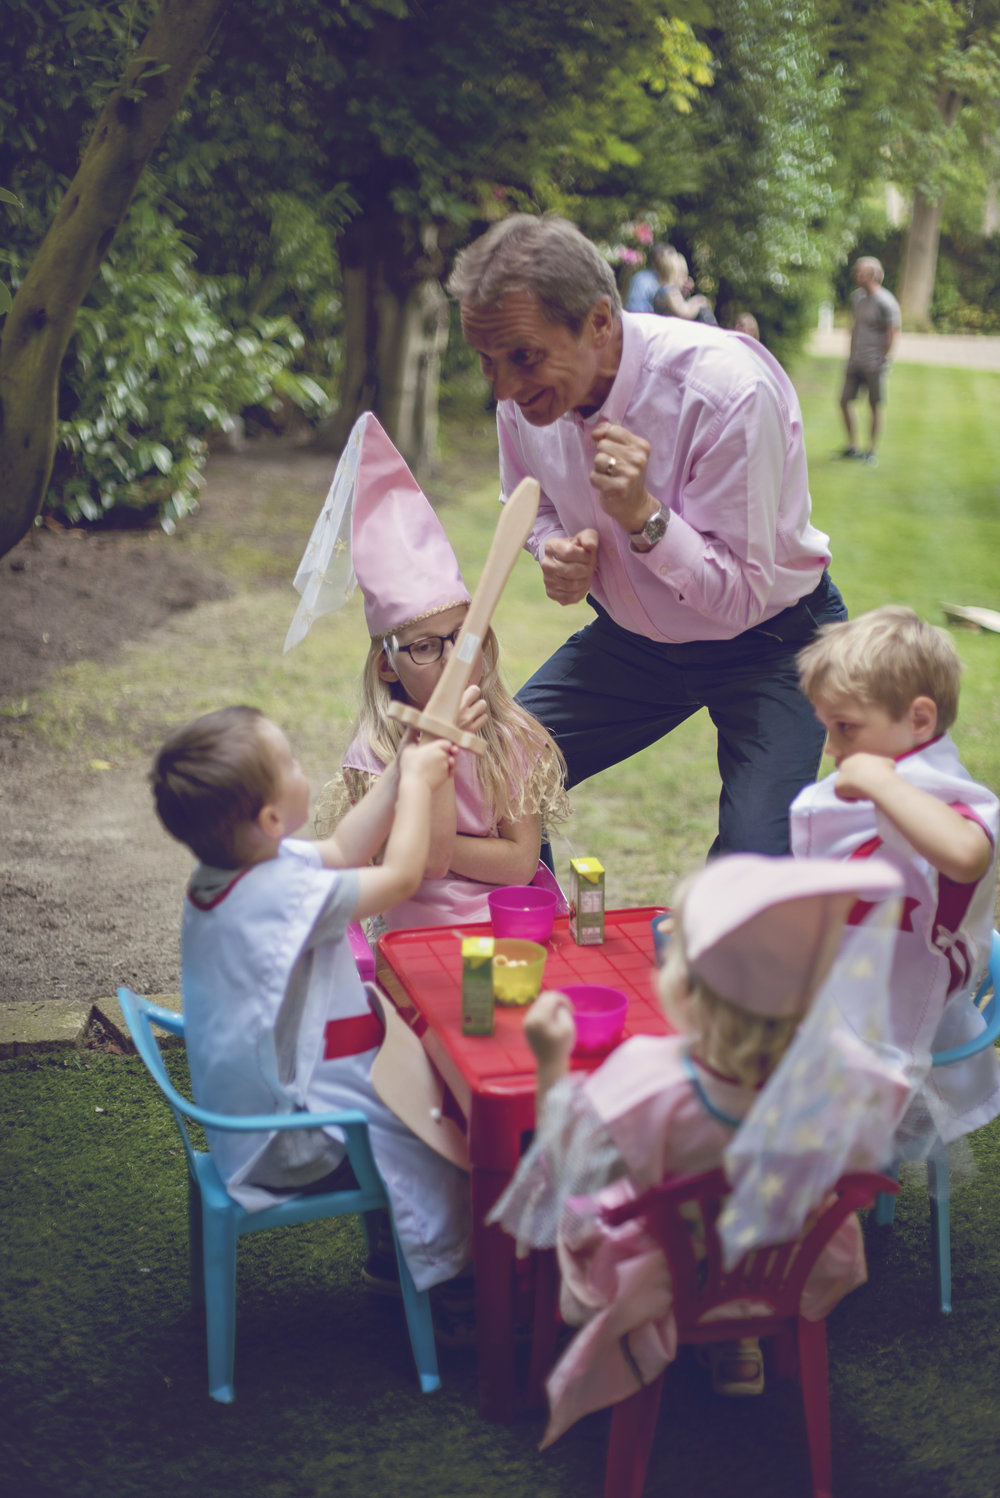 grandpa entertains the children over a picnic break from the war over the fort